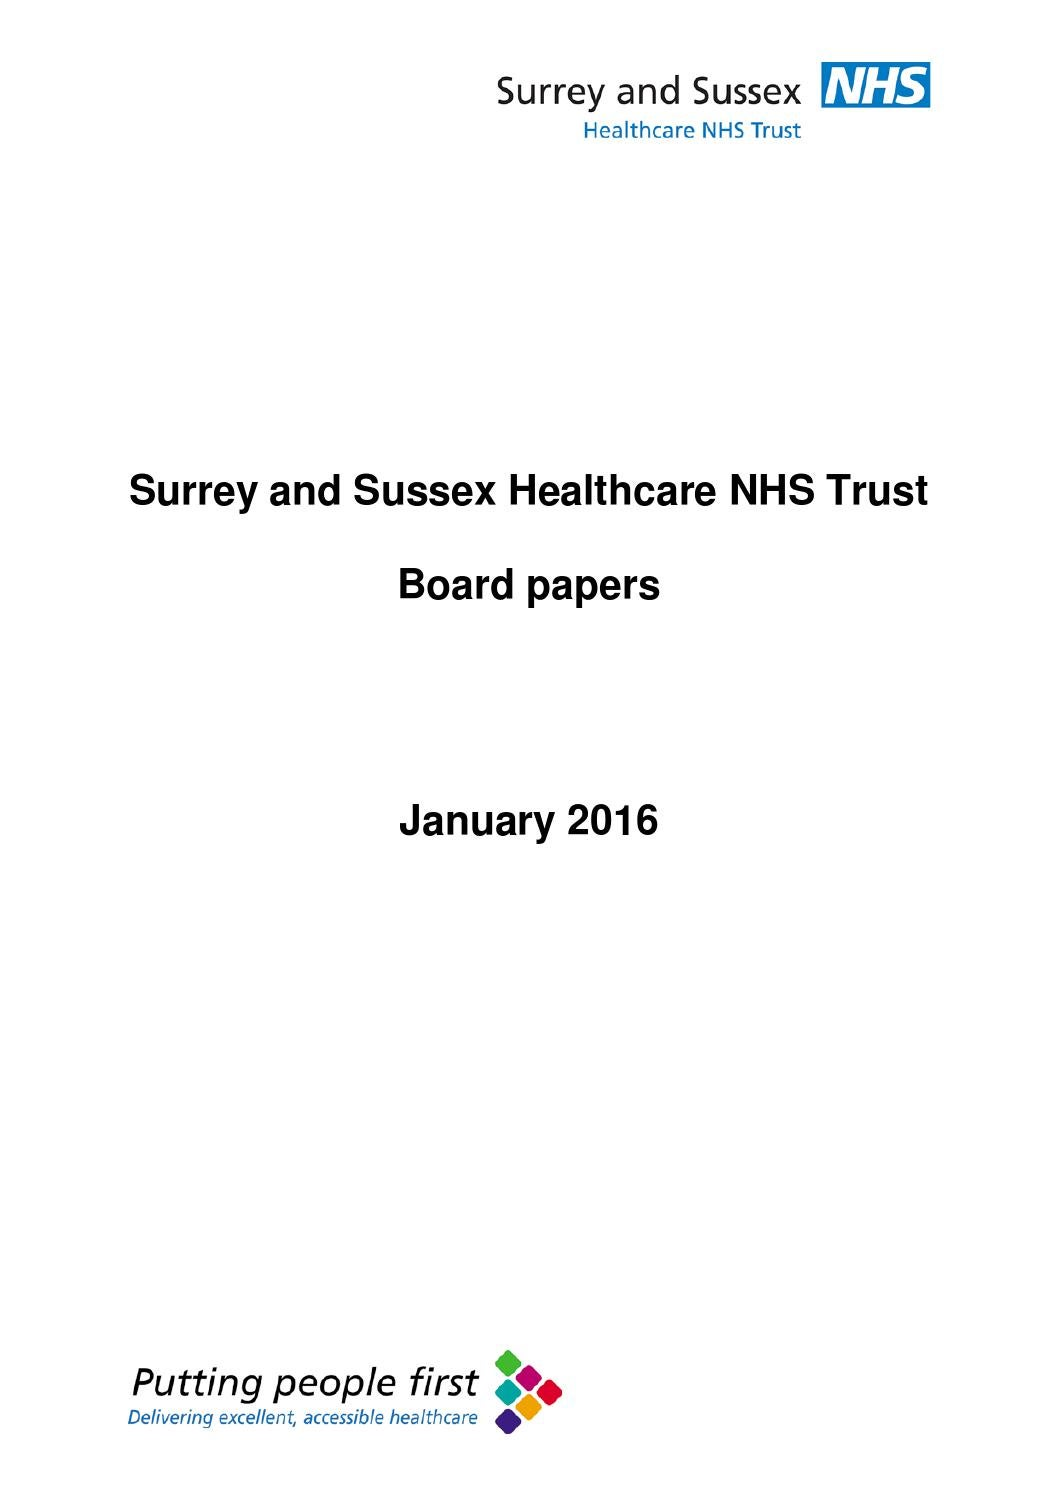 Board papers january 2016 by surrey and sussex healthcare nhs trust board papers january 2016 by surrey and sussex healthcare nhs trust issuu spiritdancerdesigns Gallery